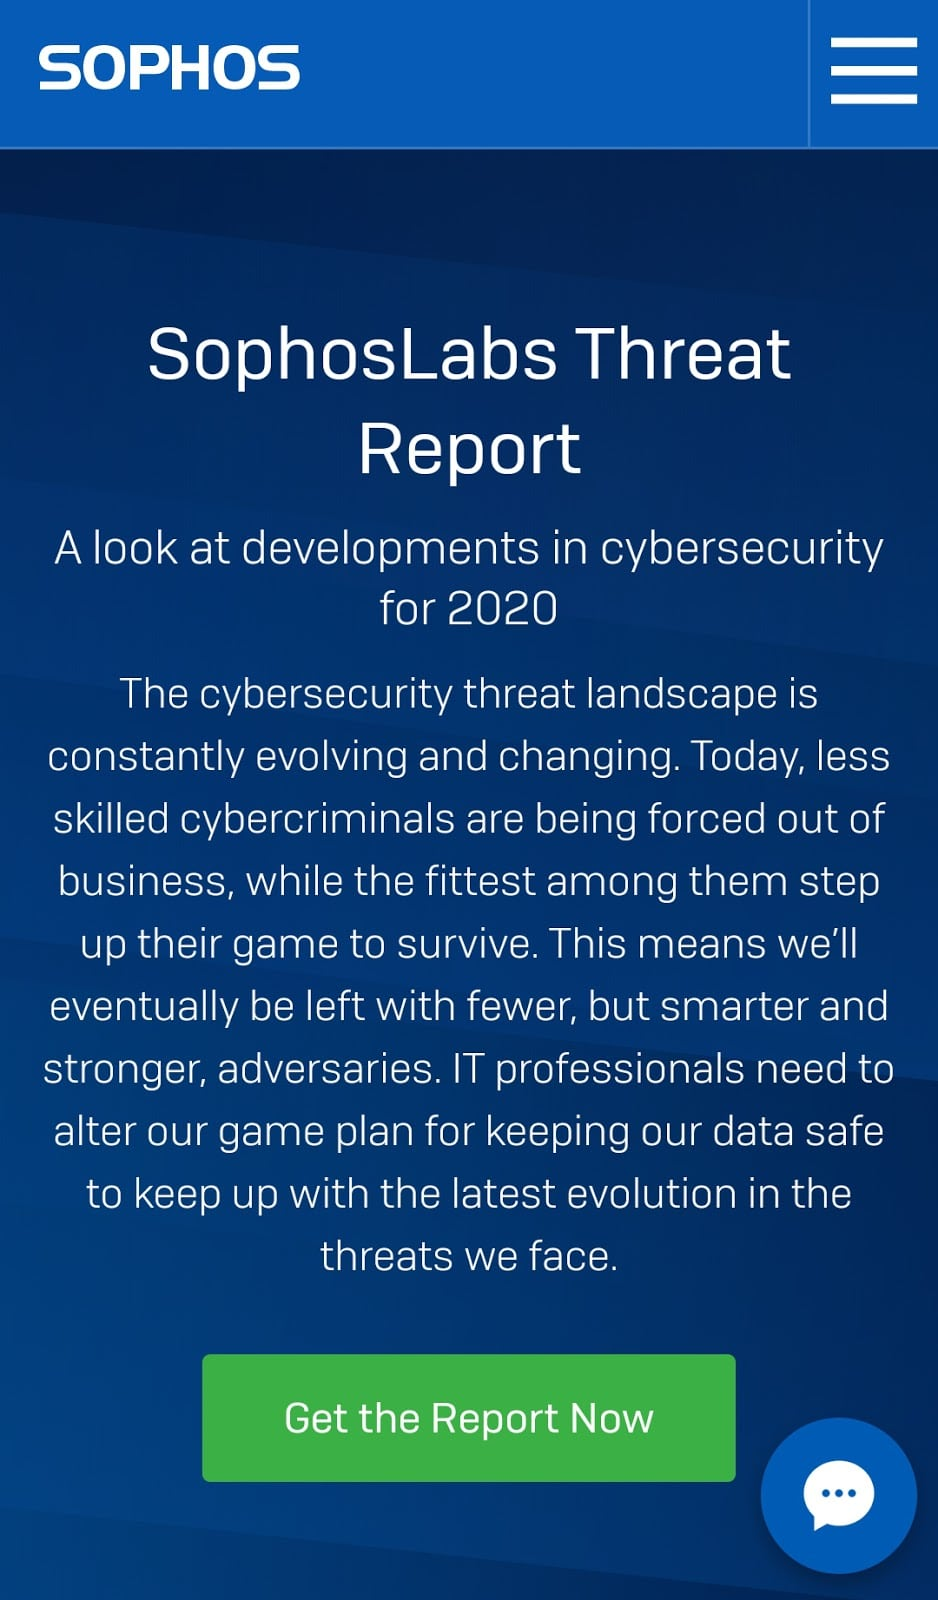 SophosLabs's cybersecurity report